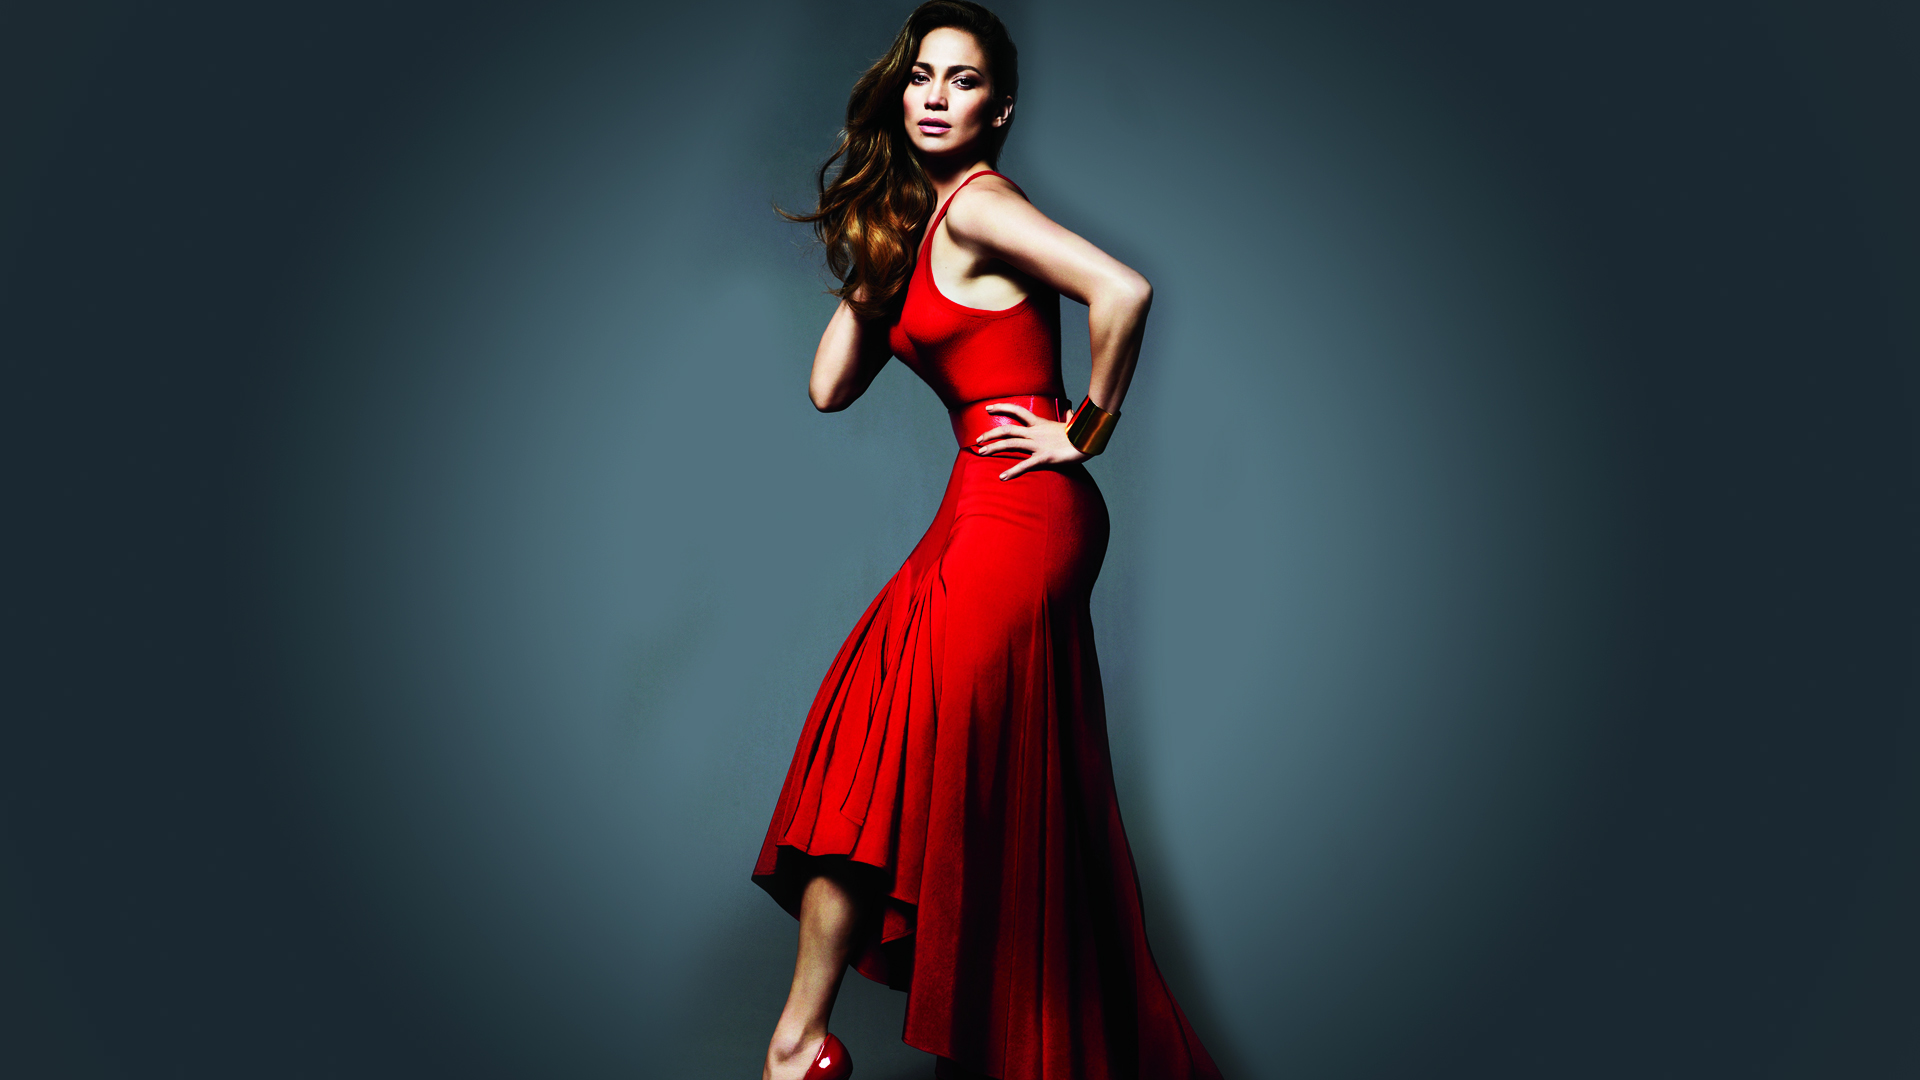 Red Dress Jennifer Lopez Wallpaper